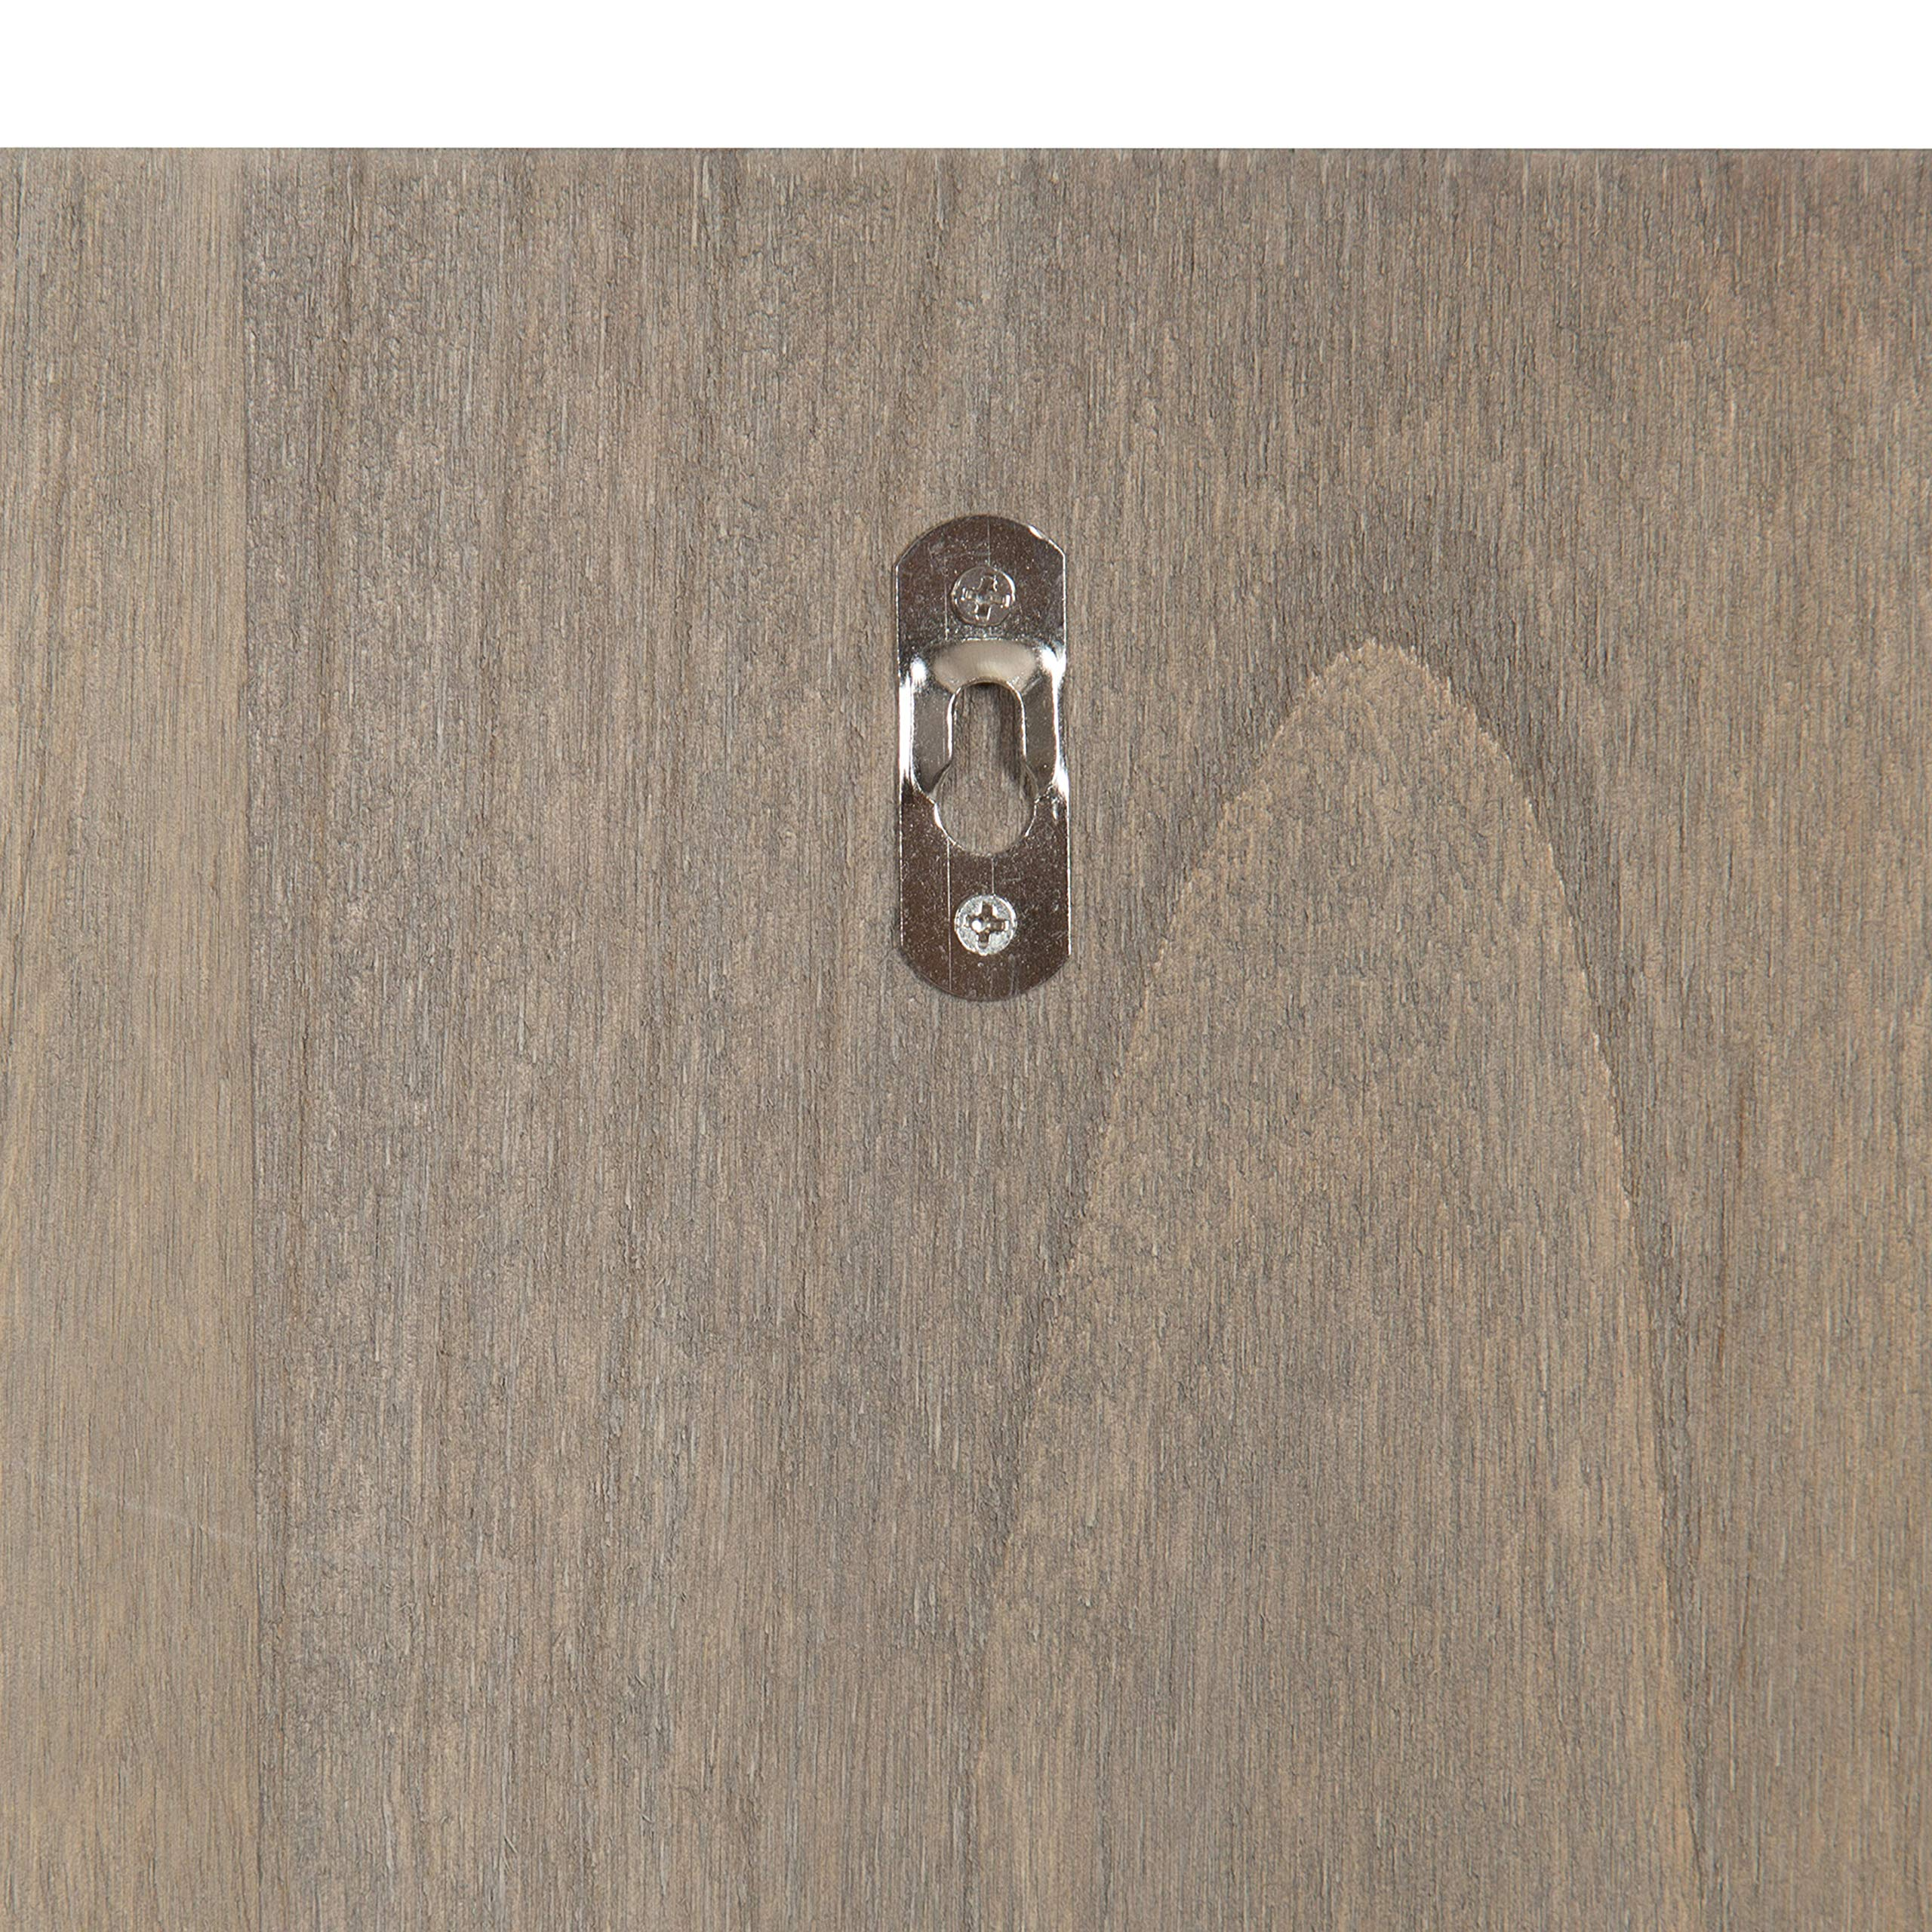 Kate and Laurel Growth Chart 6.5' Wood Wall Ruler, Gray by Kate and Laurel (Image #4)